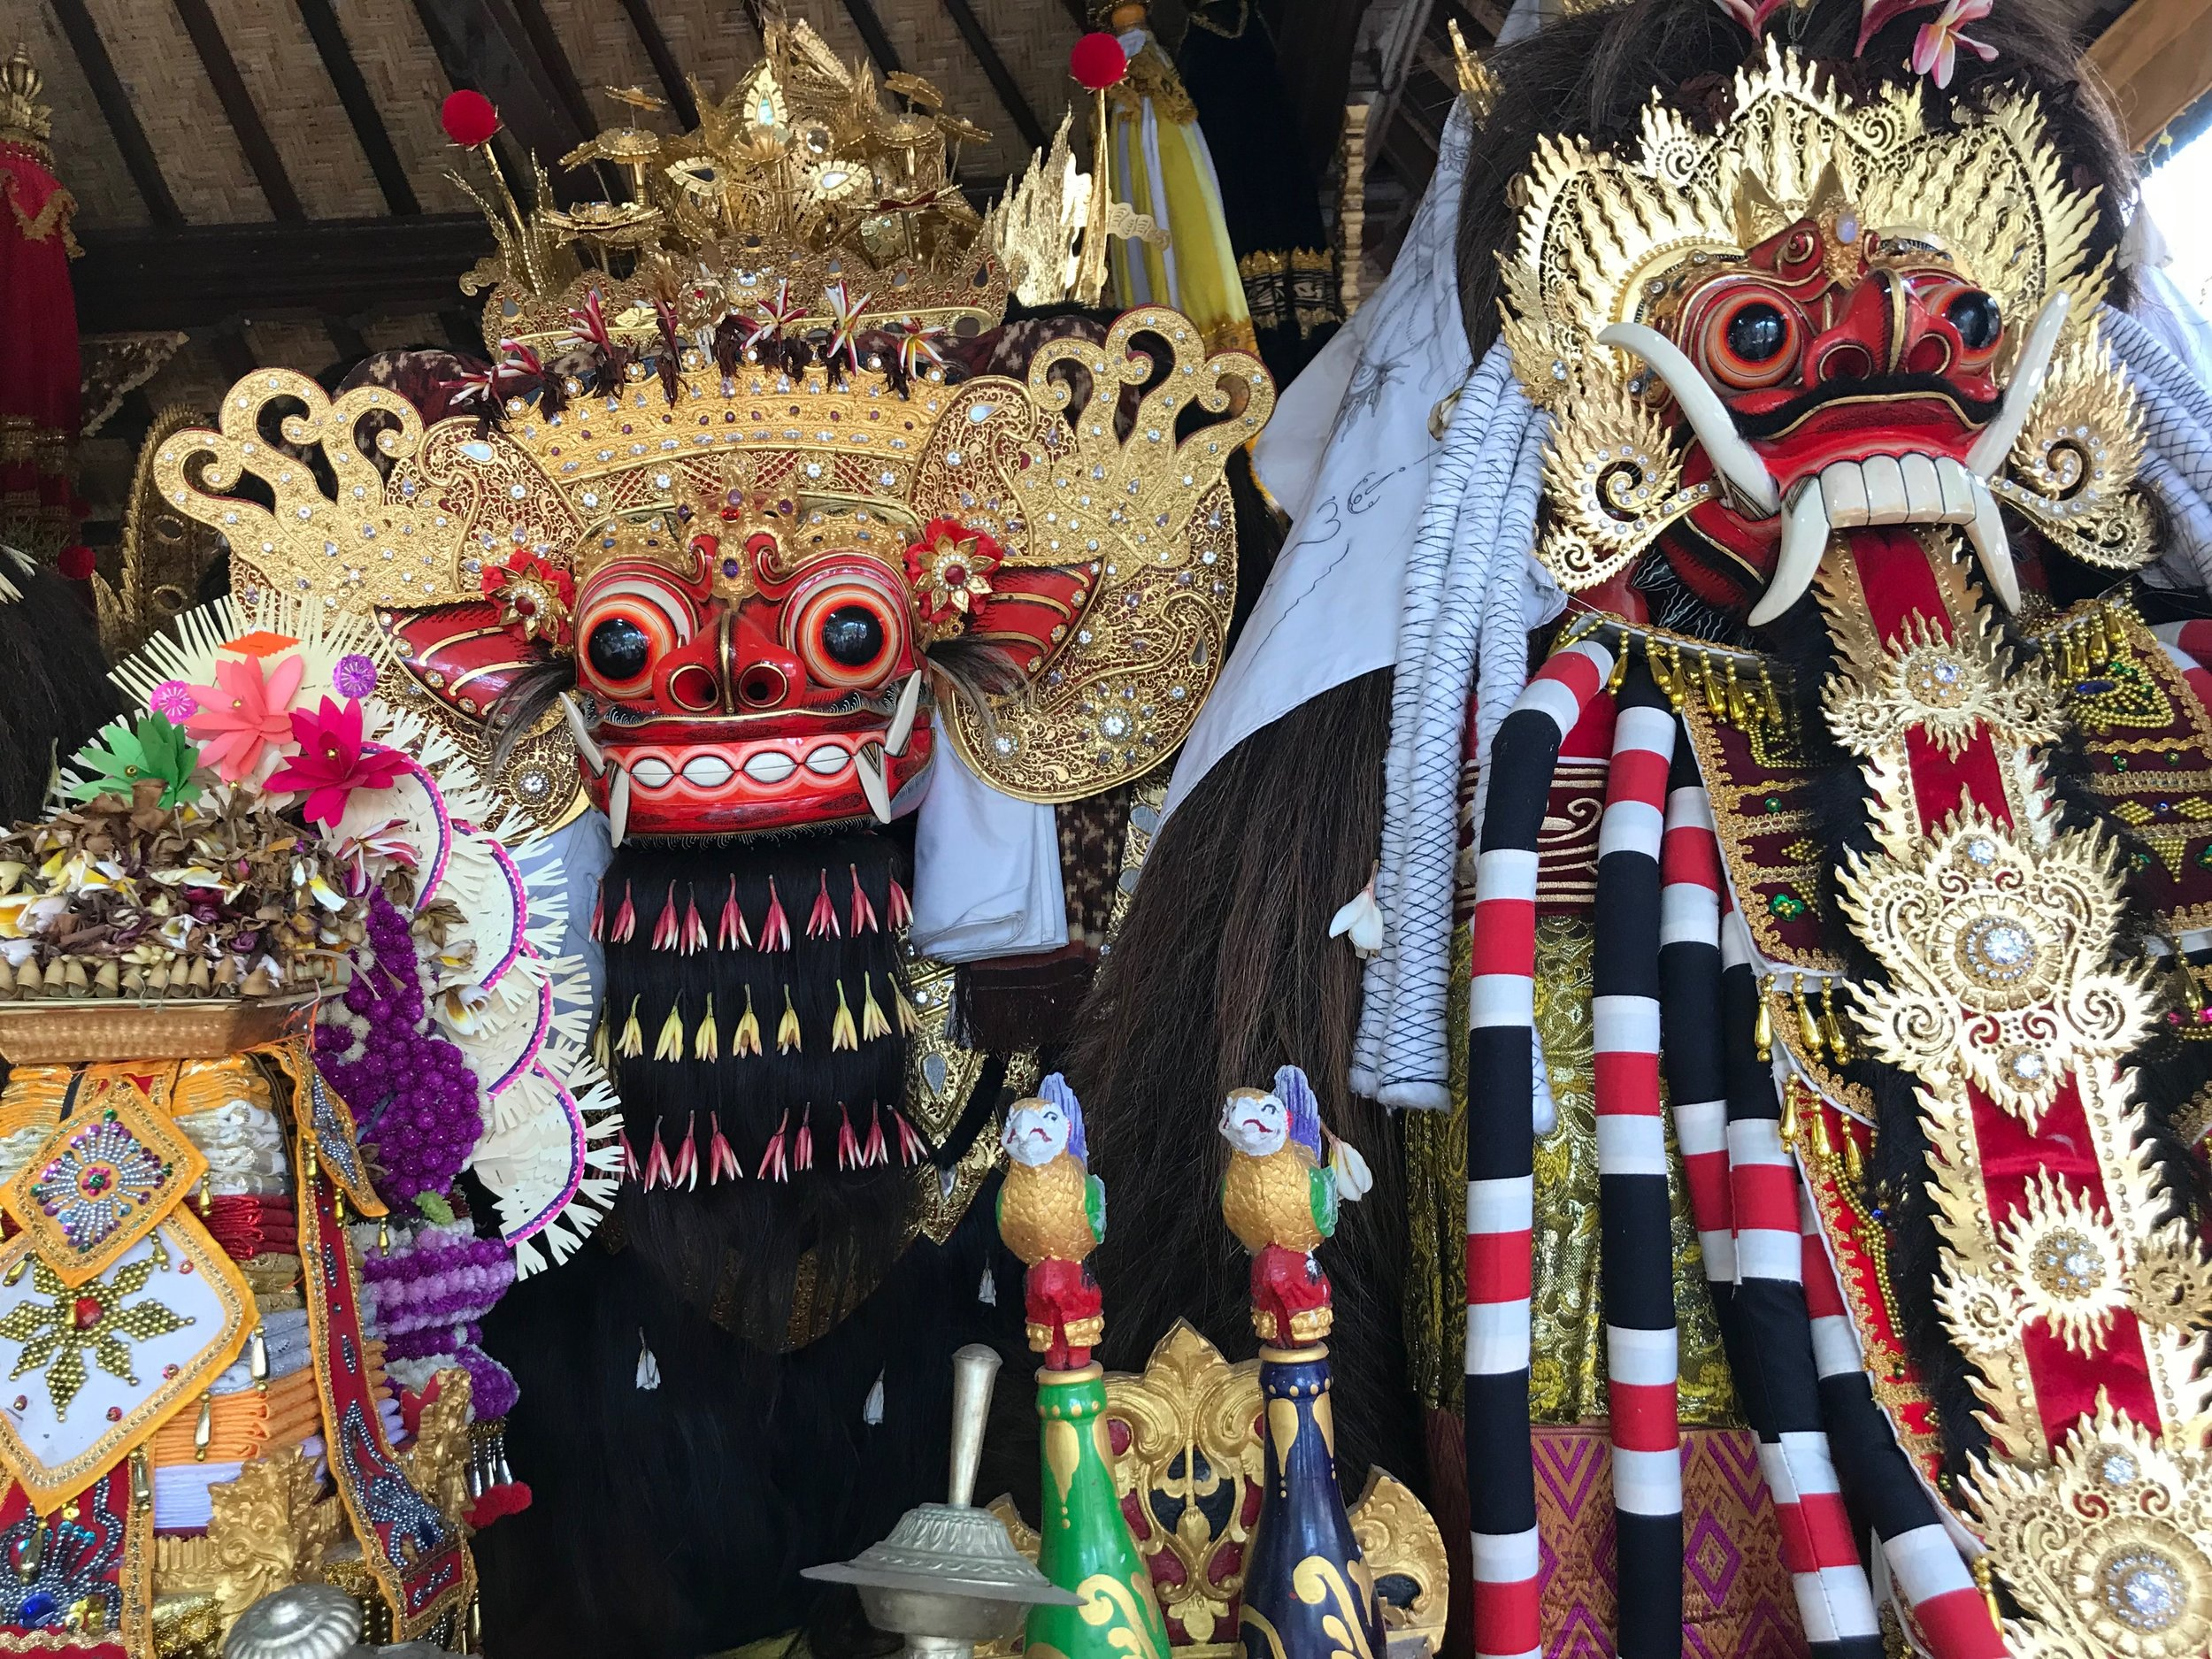 The mythical creature Barong represents all that is good in the world